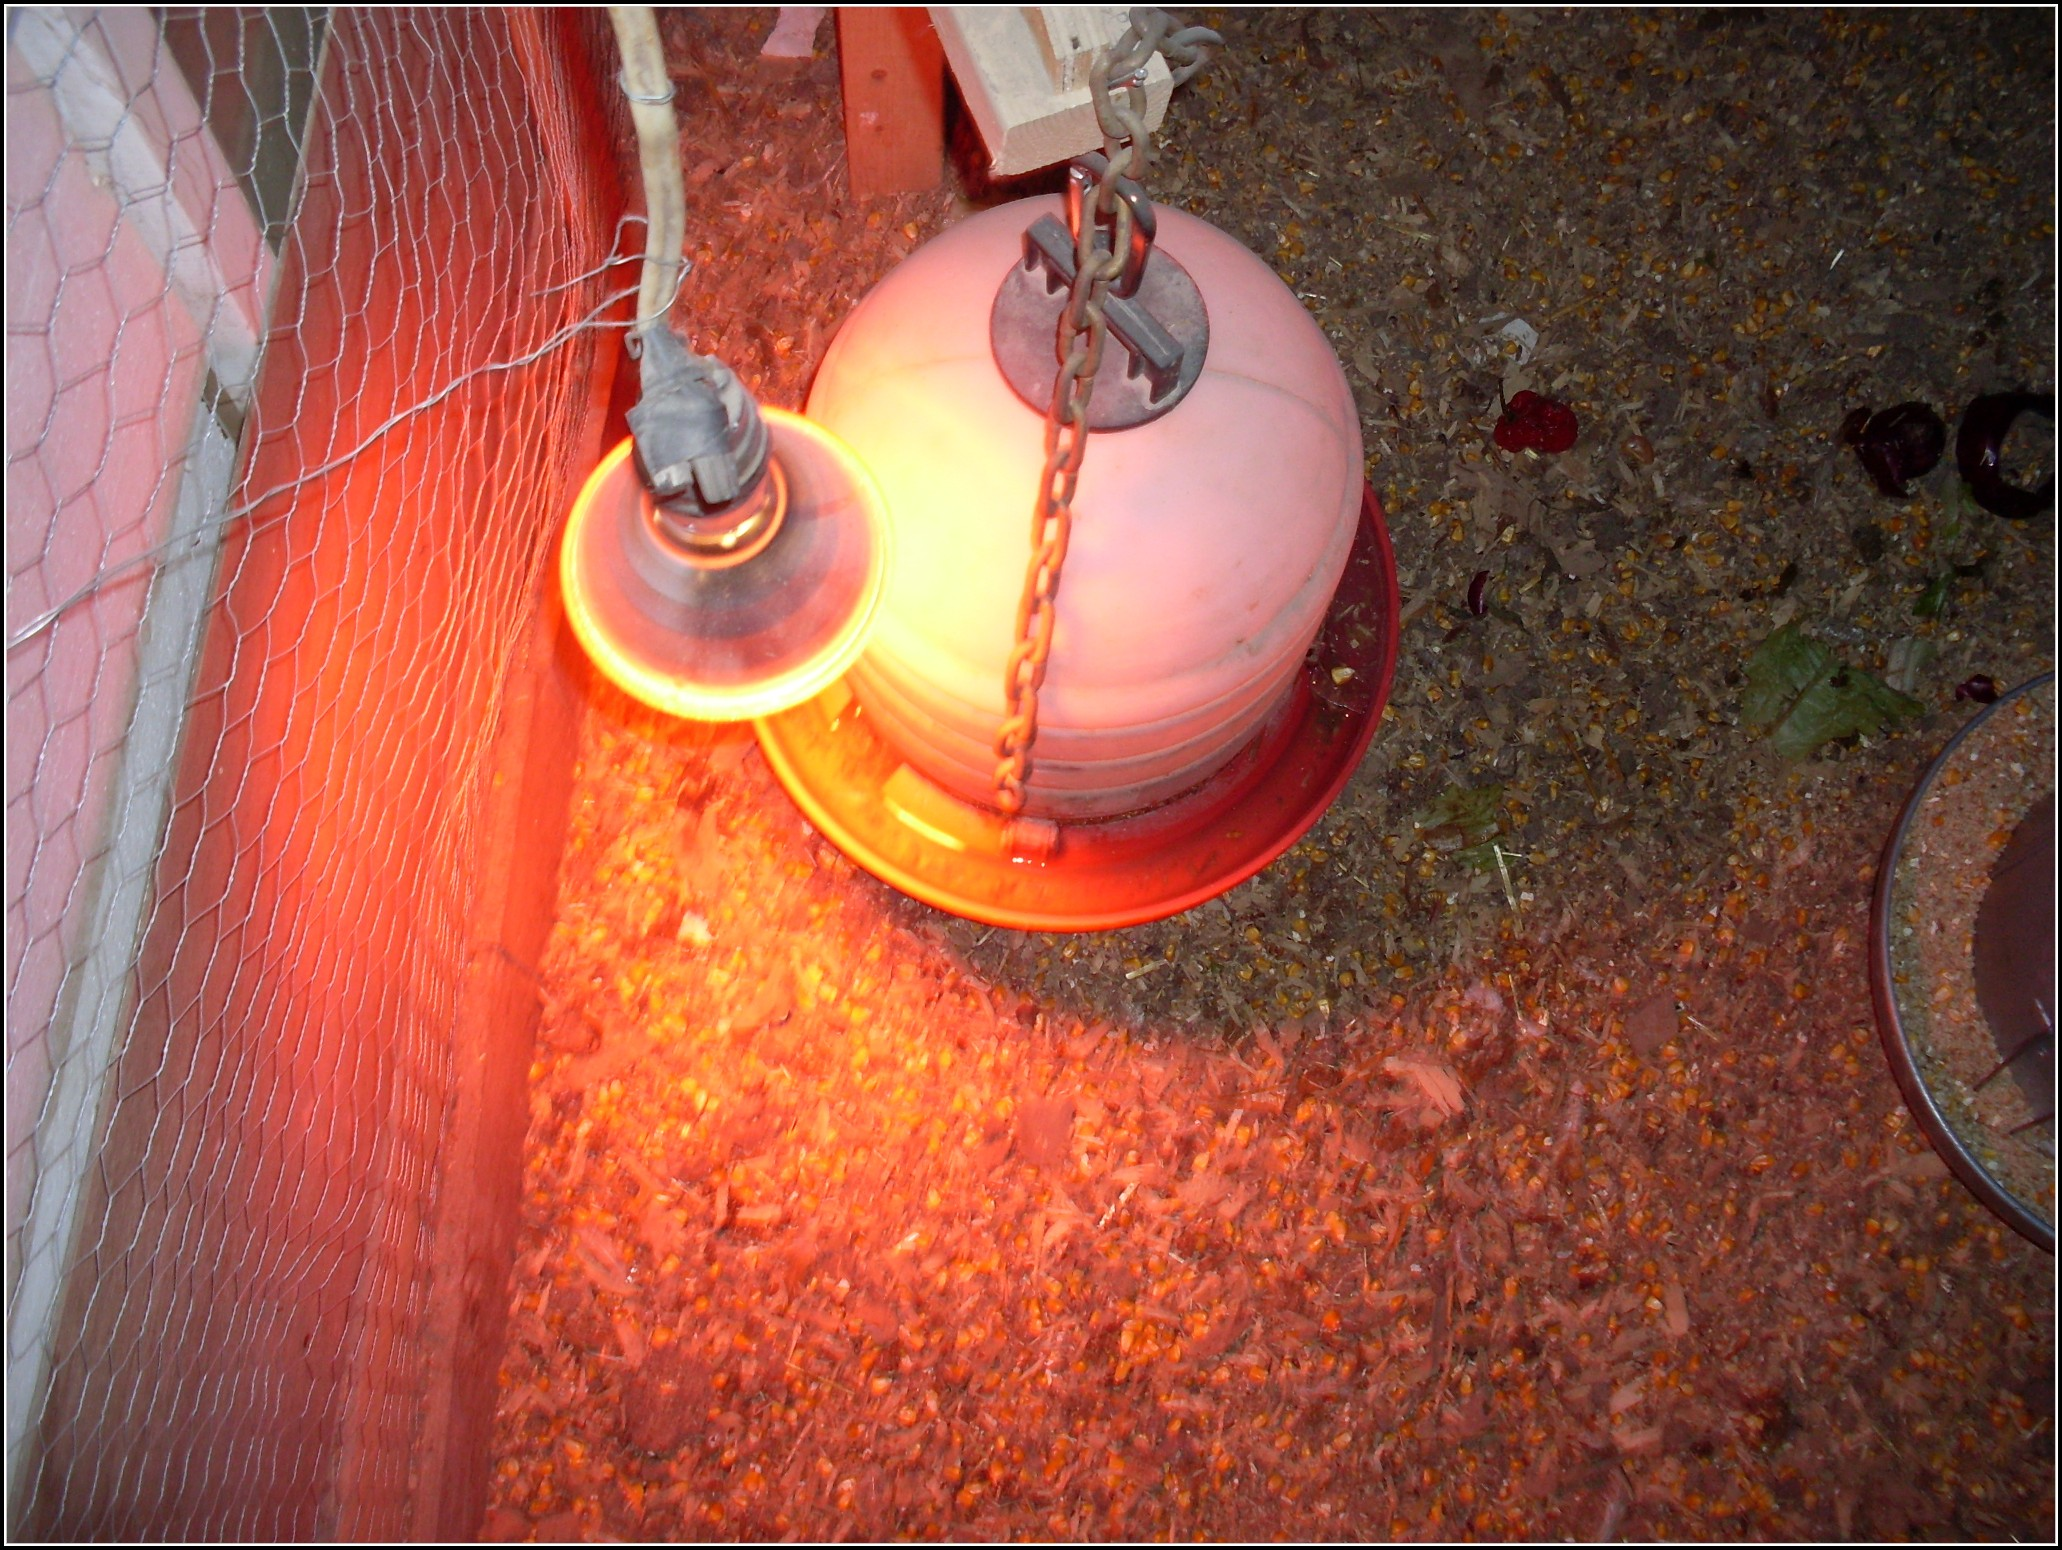 Heat Lamp For Chickens In Winter